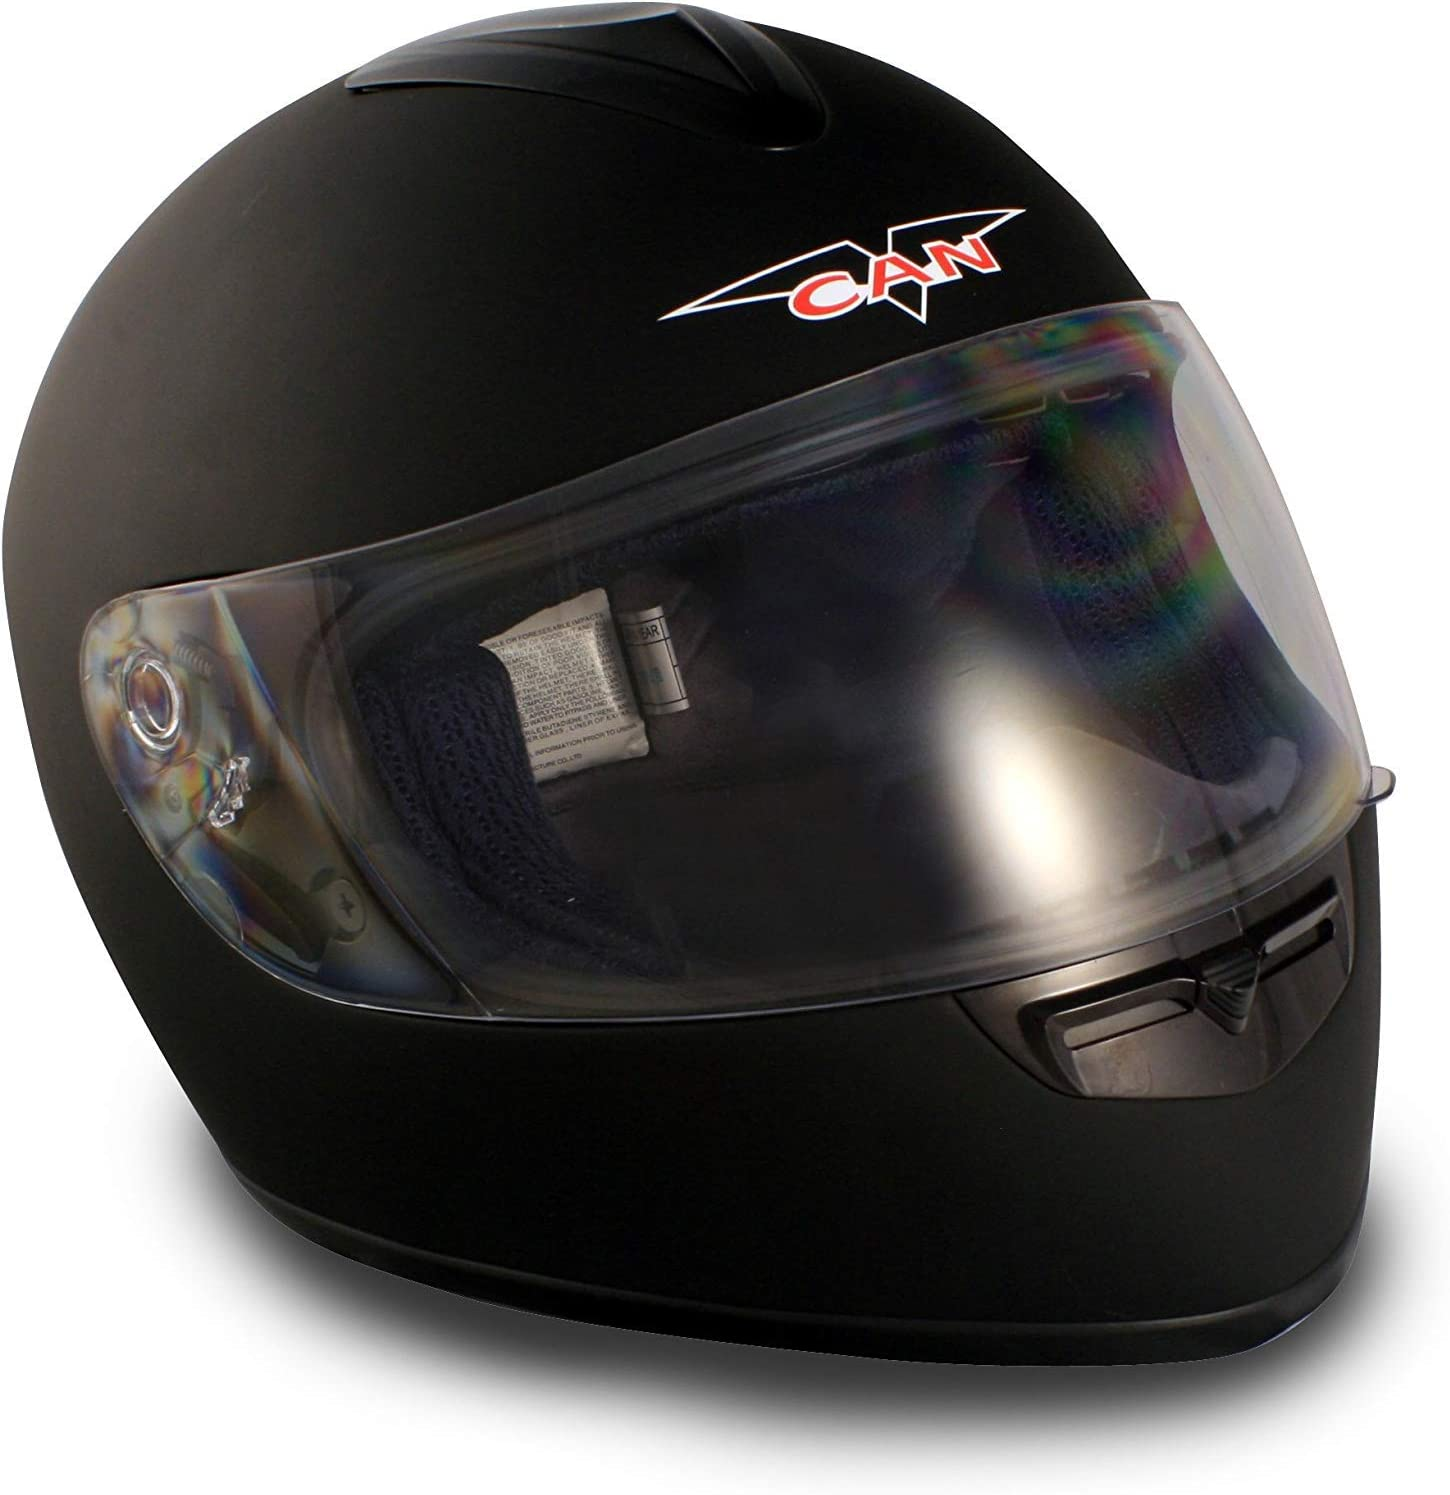 VCAN V136 Full-Face Helmet Black, X-Large